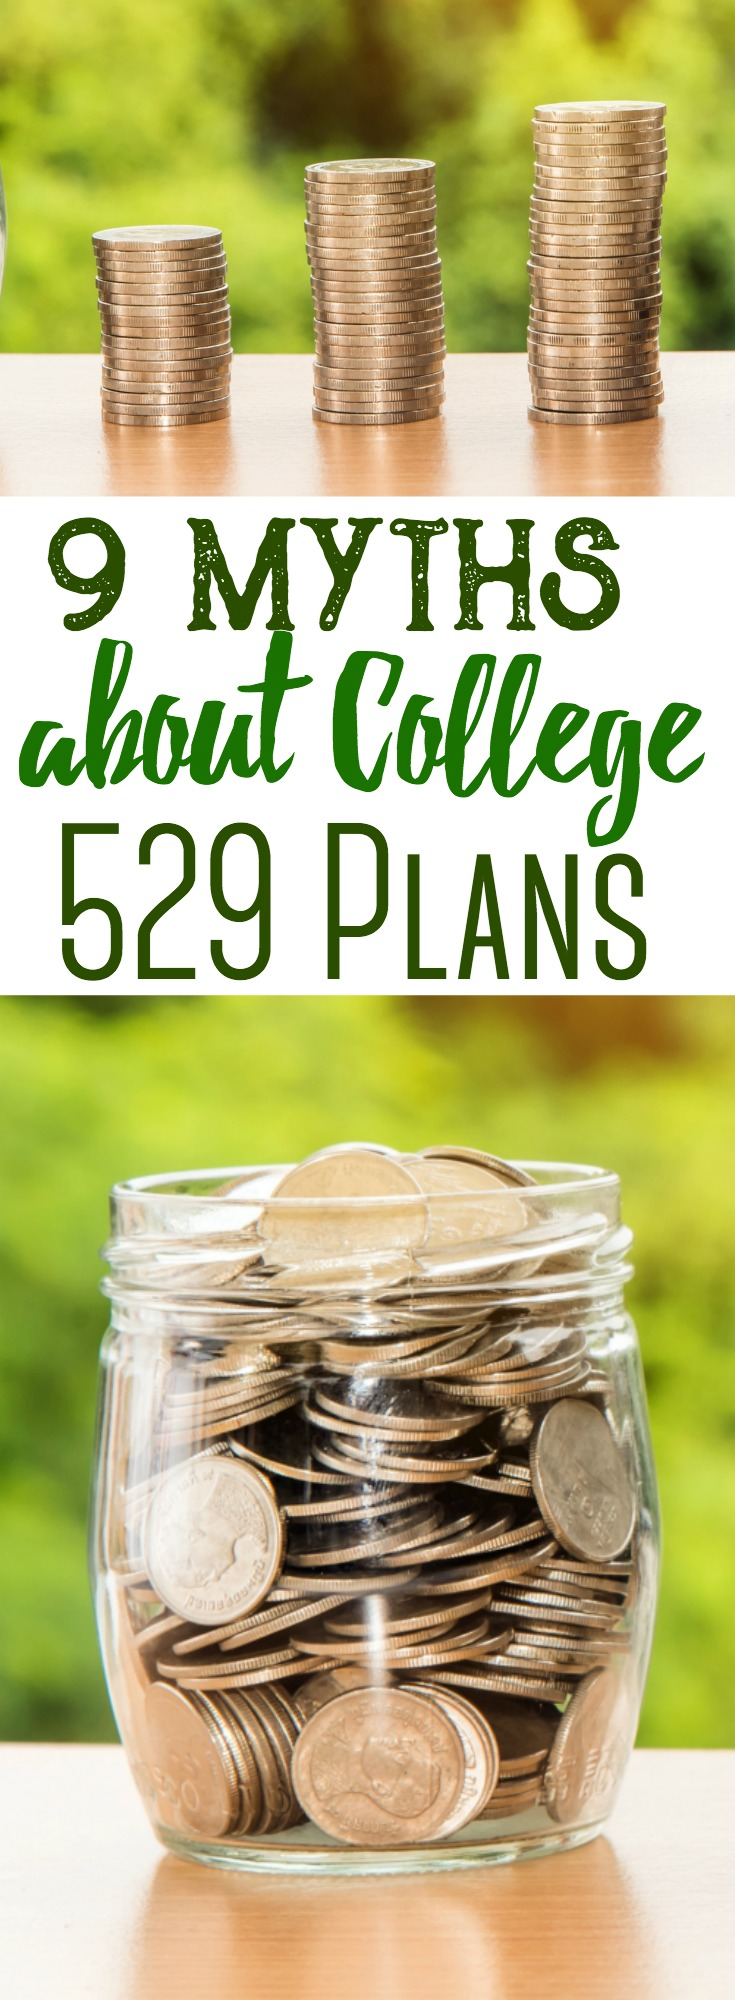 College 529 plans are gaining popularity amongst parents who are trying to save for their children's future education costs. We'll explain 9 common myths about the 529 plan and help you try to uncover their true potential as a savings vehicle. #investing #collegefund #parenting #kids #budget #savingmoney